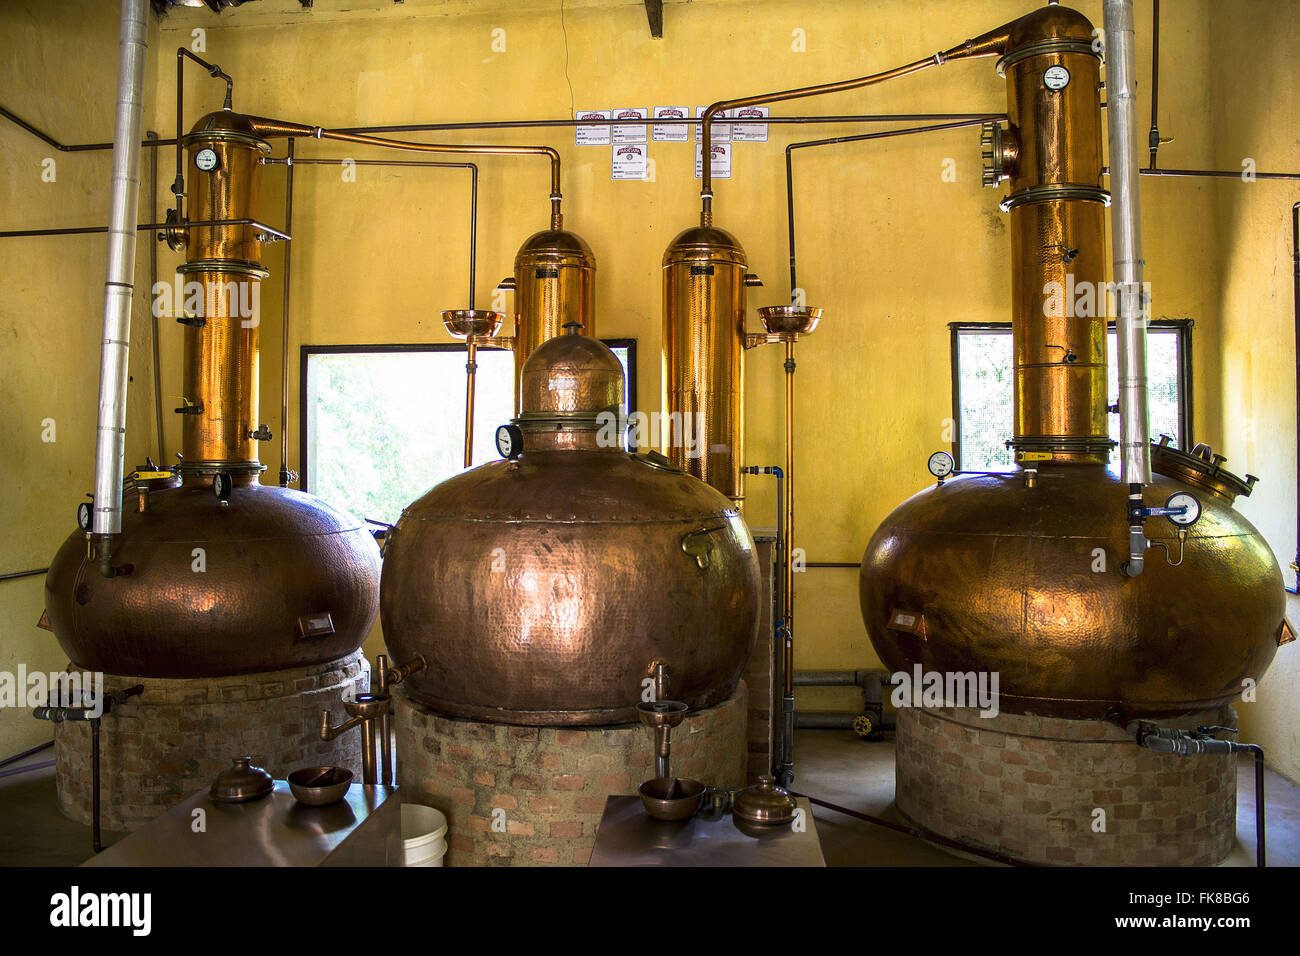 Distillation of cane sugar process for the production of cachaca